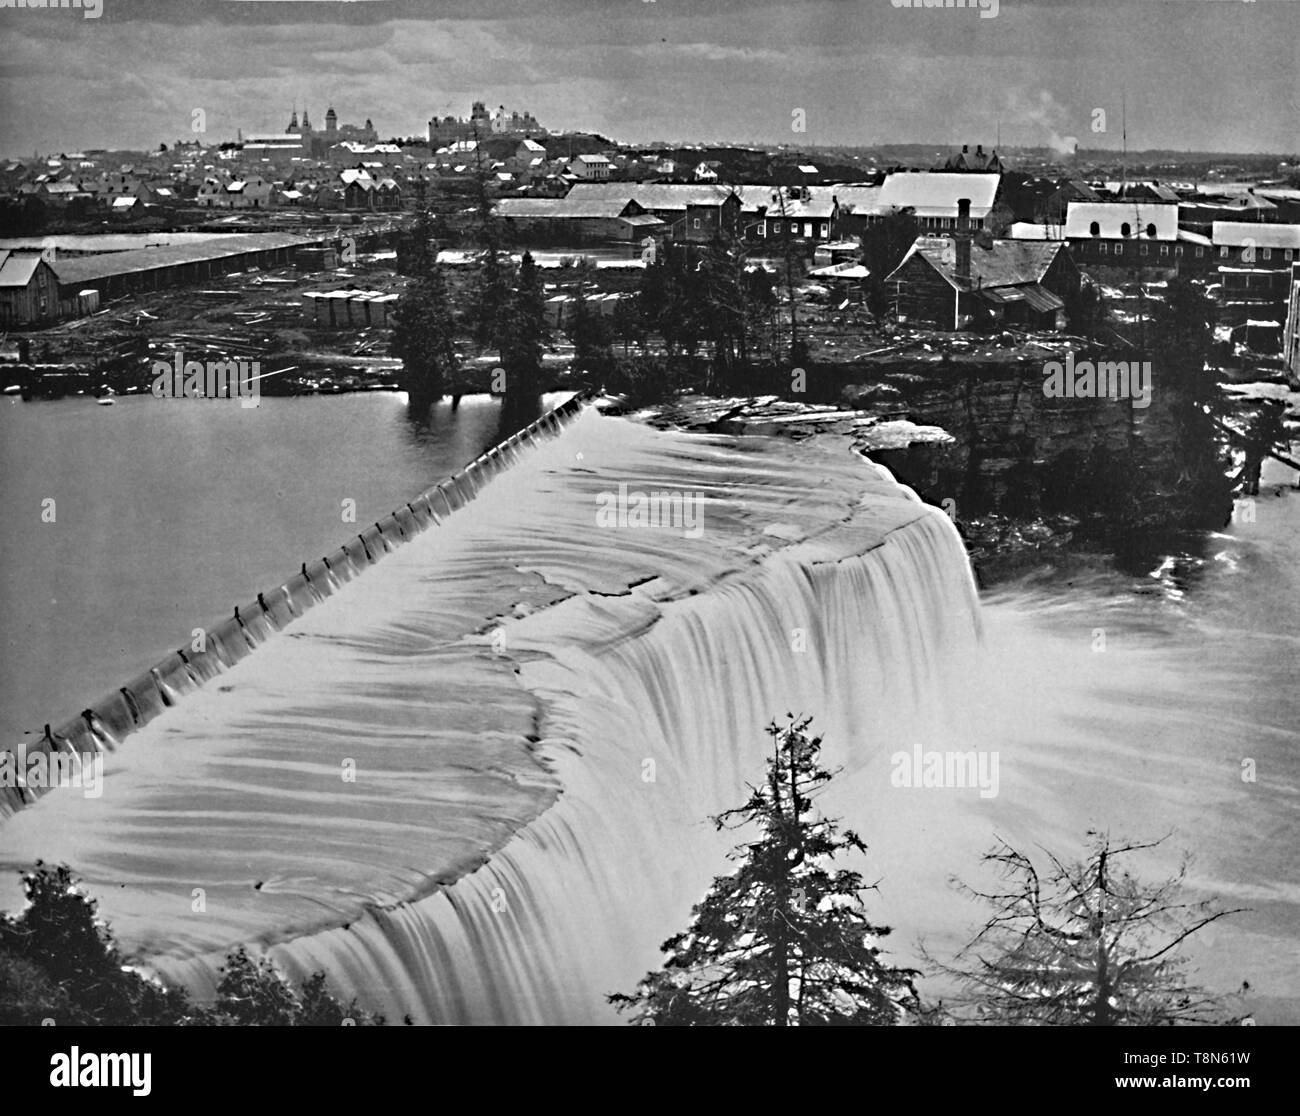 """'Ottawa, Canada, from Rideau Falls', c1897. Rideau Falls in Ottawa, Ontario, Canada, where the Rideau River falls into the Ottawa River. Named by the early French for their resemblance to a curtain, or rideau in French. From """"A Tour Through the New World America"""", by Prof. Geo. R. Cromwell. [C. N. Greig & Co., London, c1897] - Stock Image"""